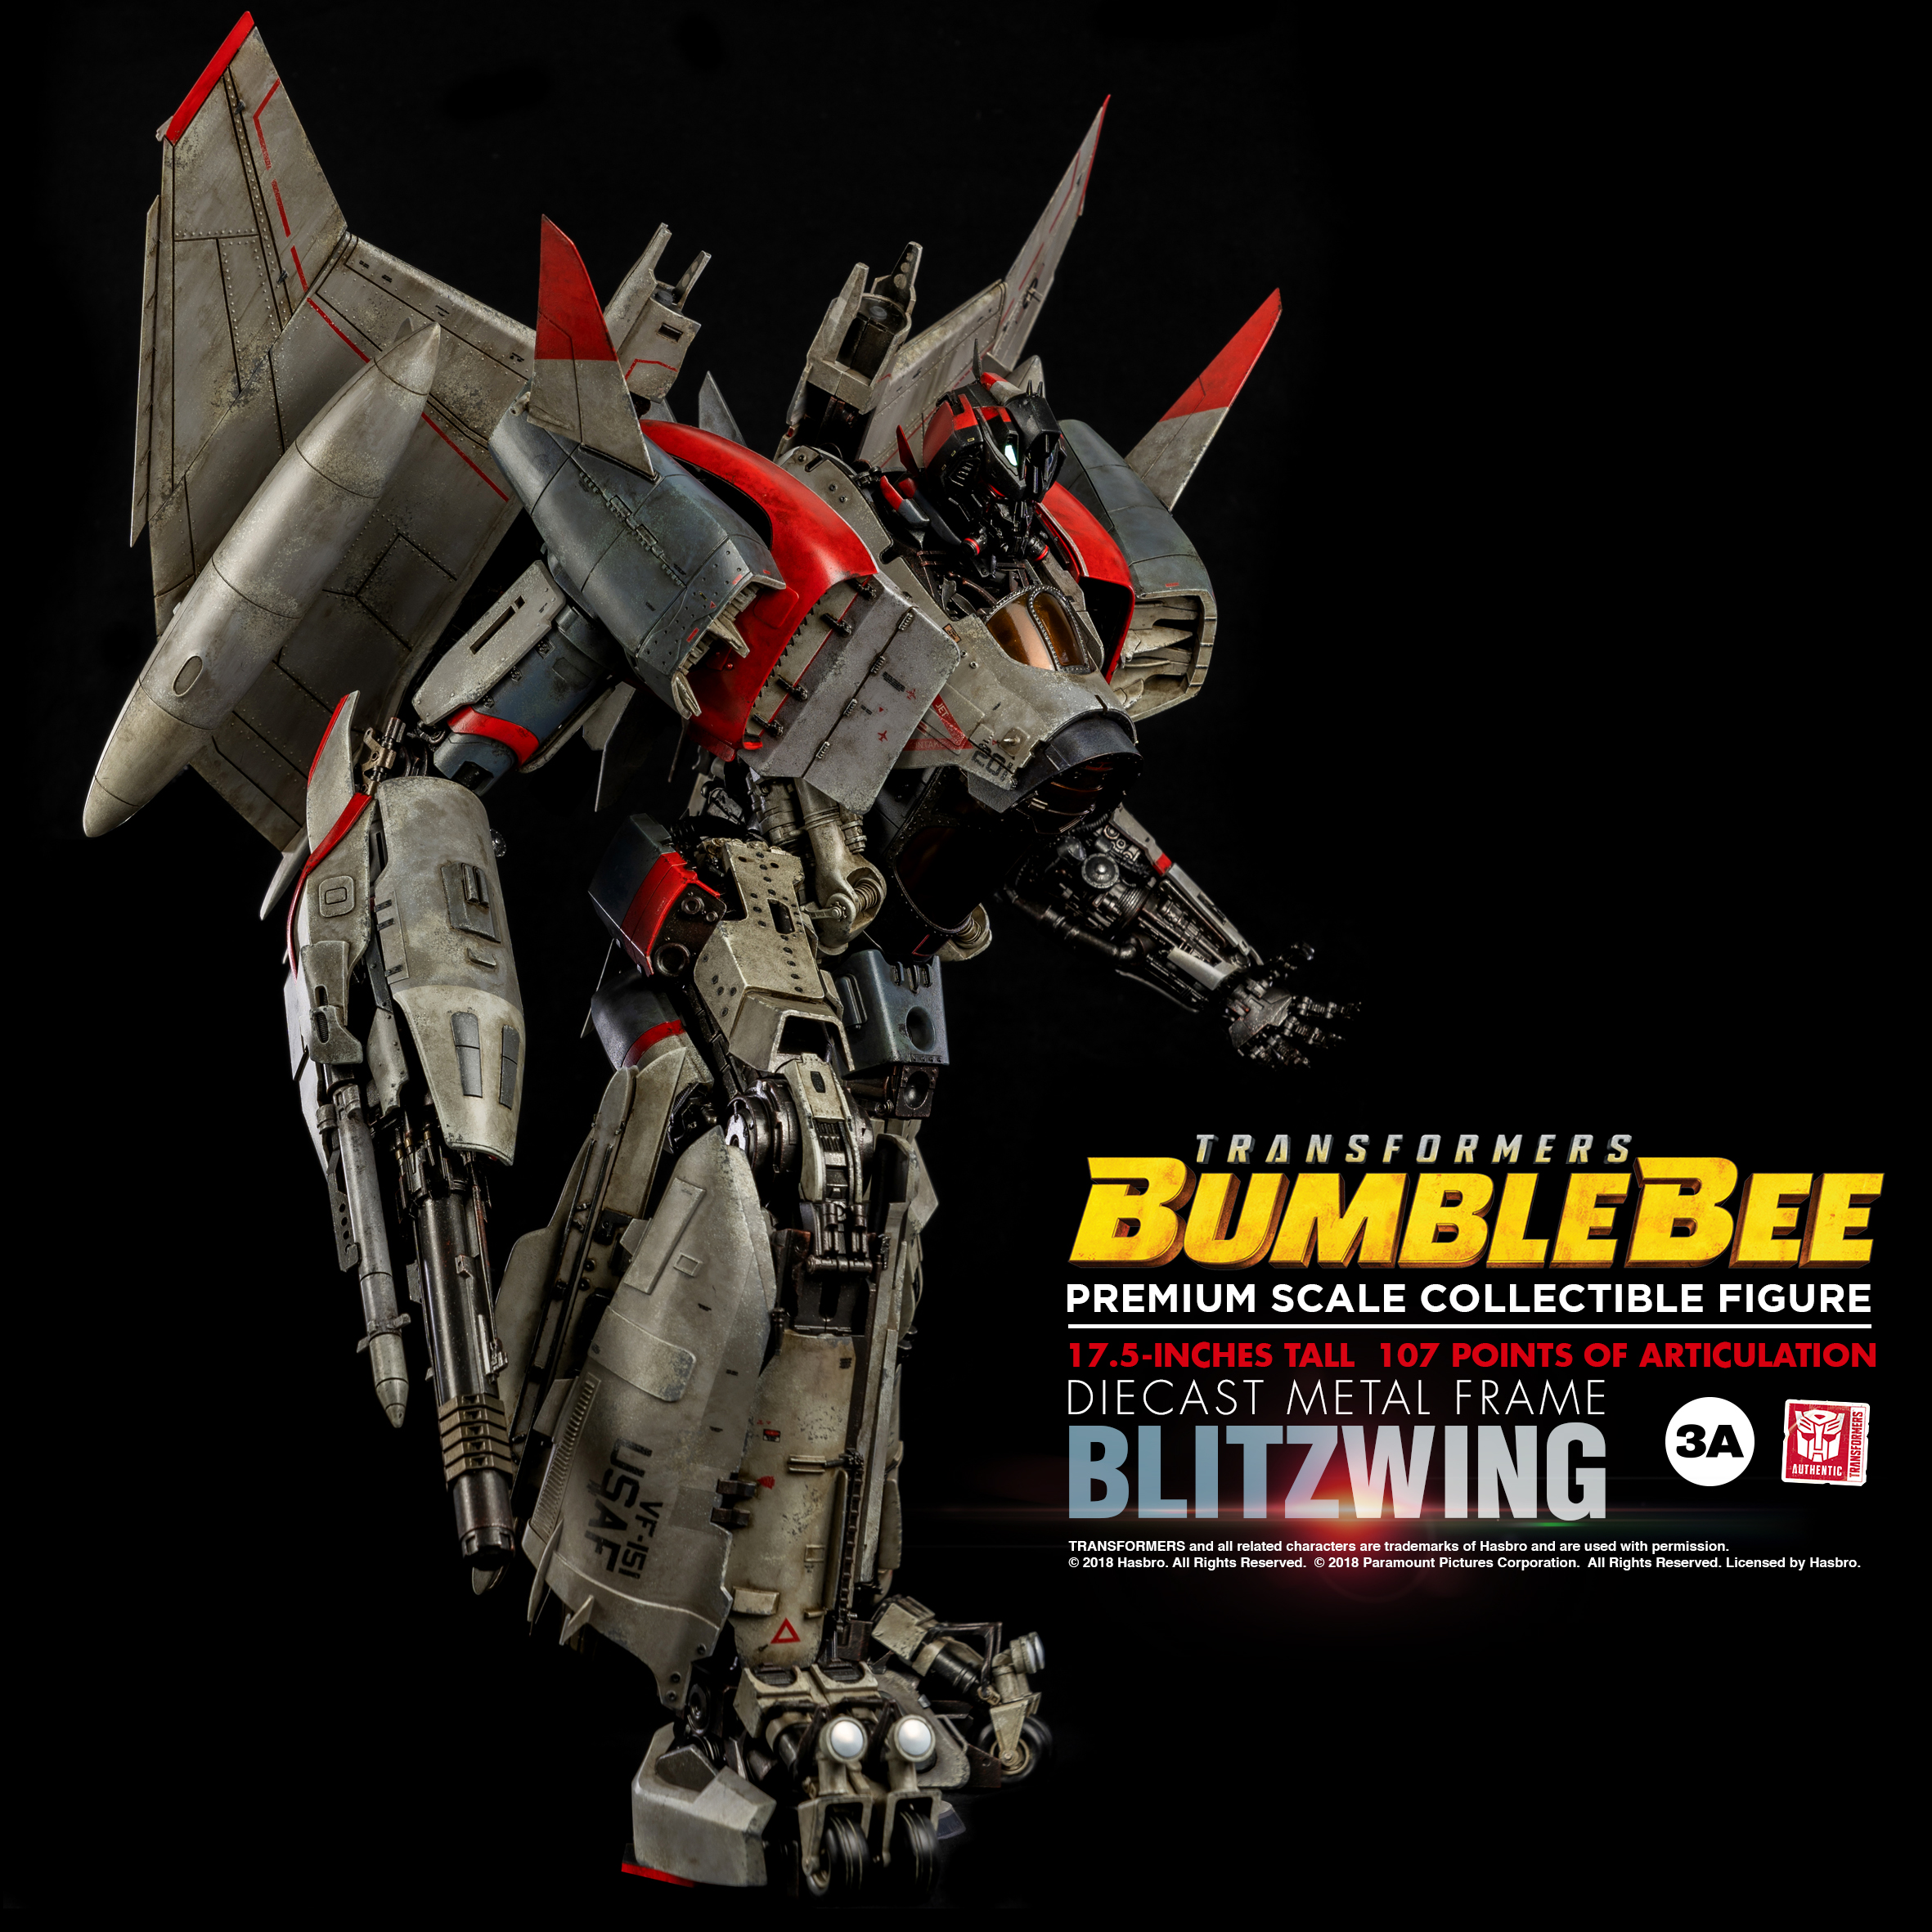 Blitzwing_PM_1050.jpg